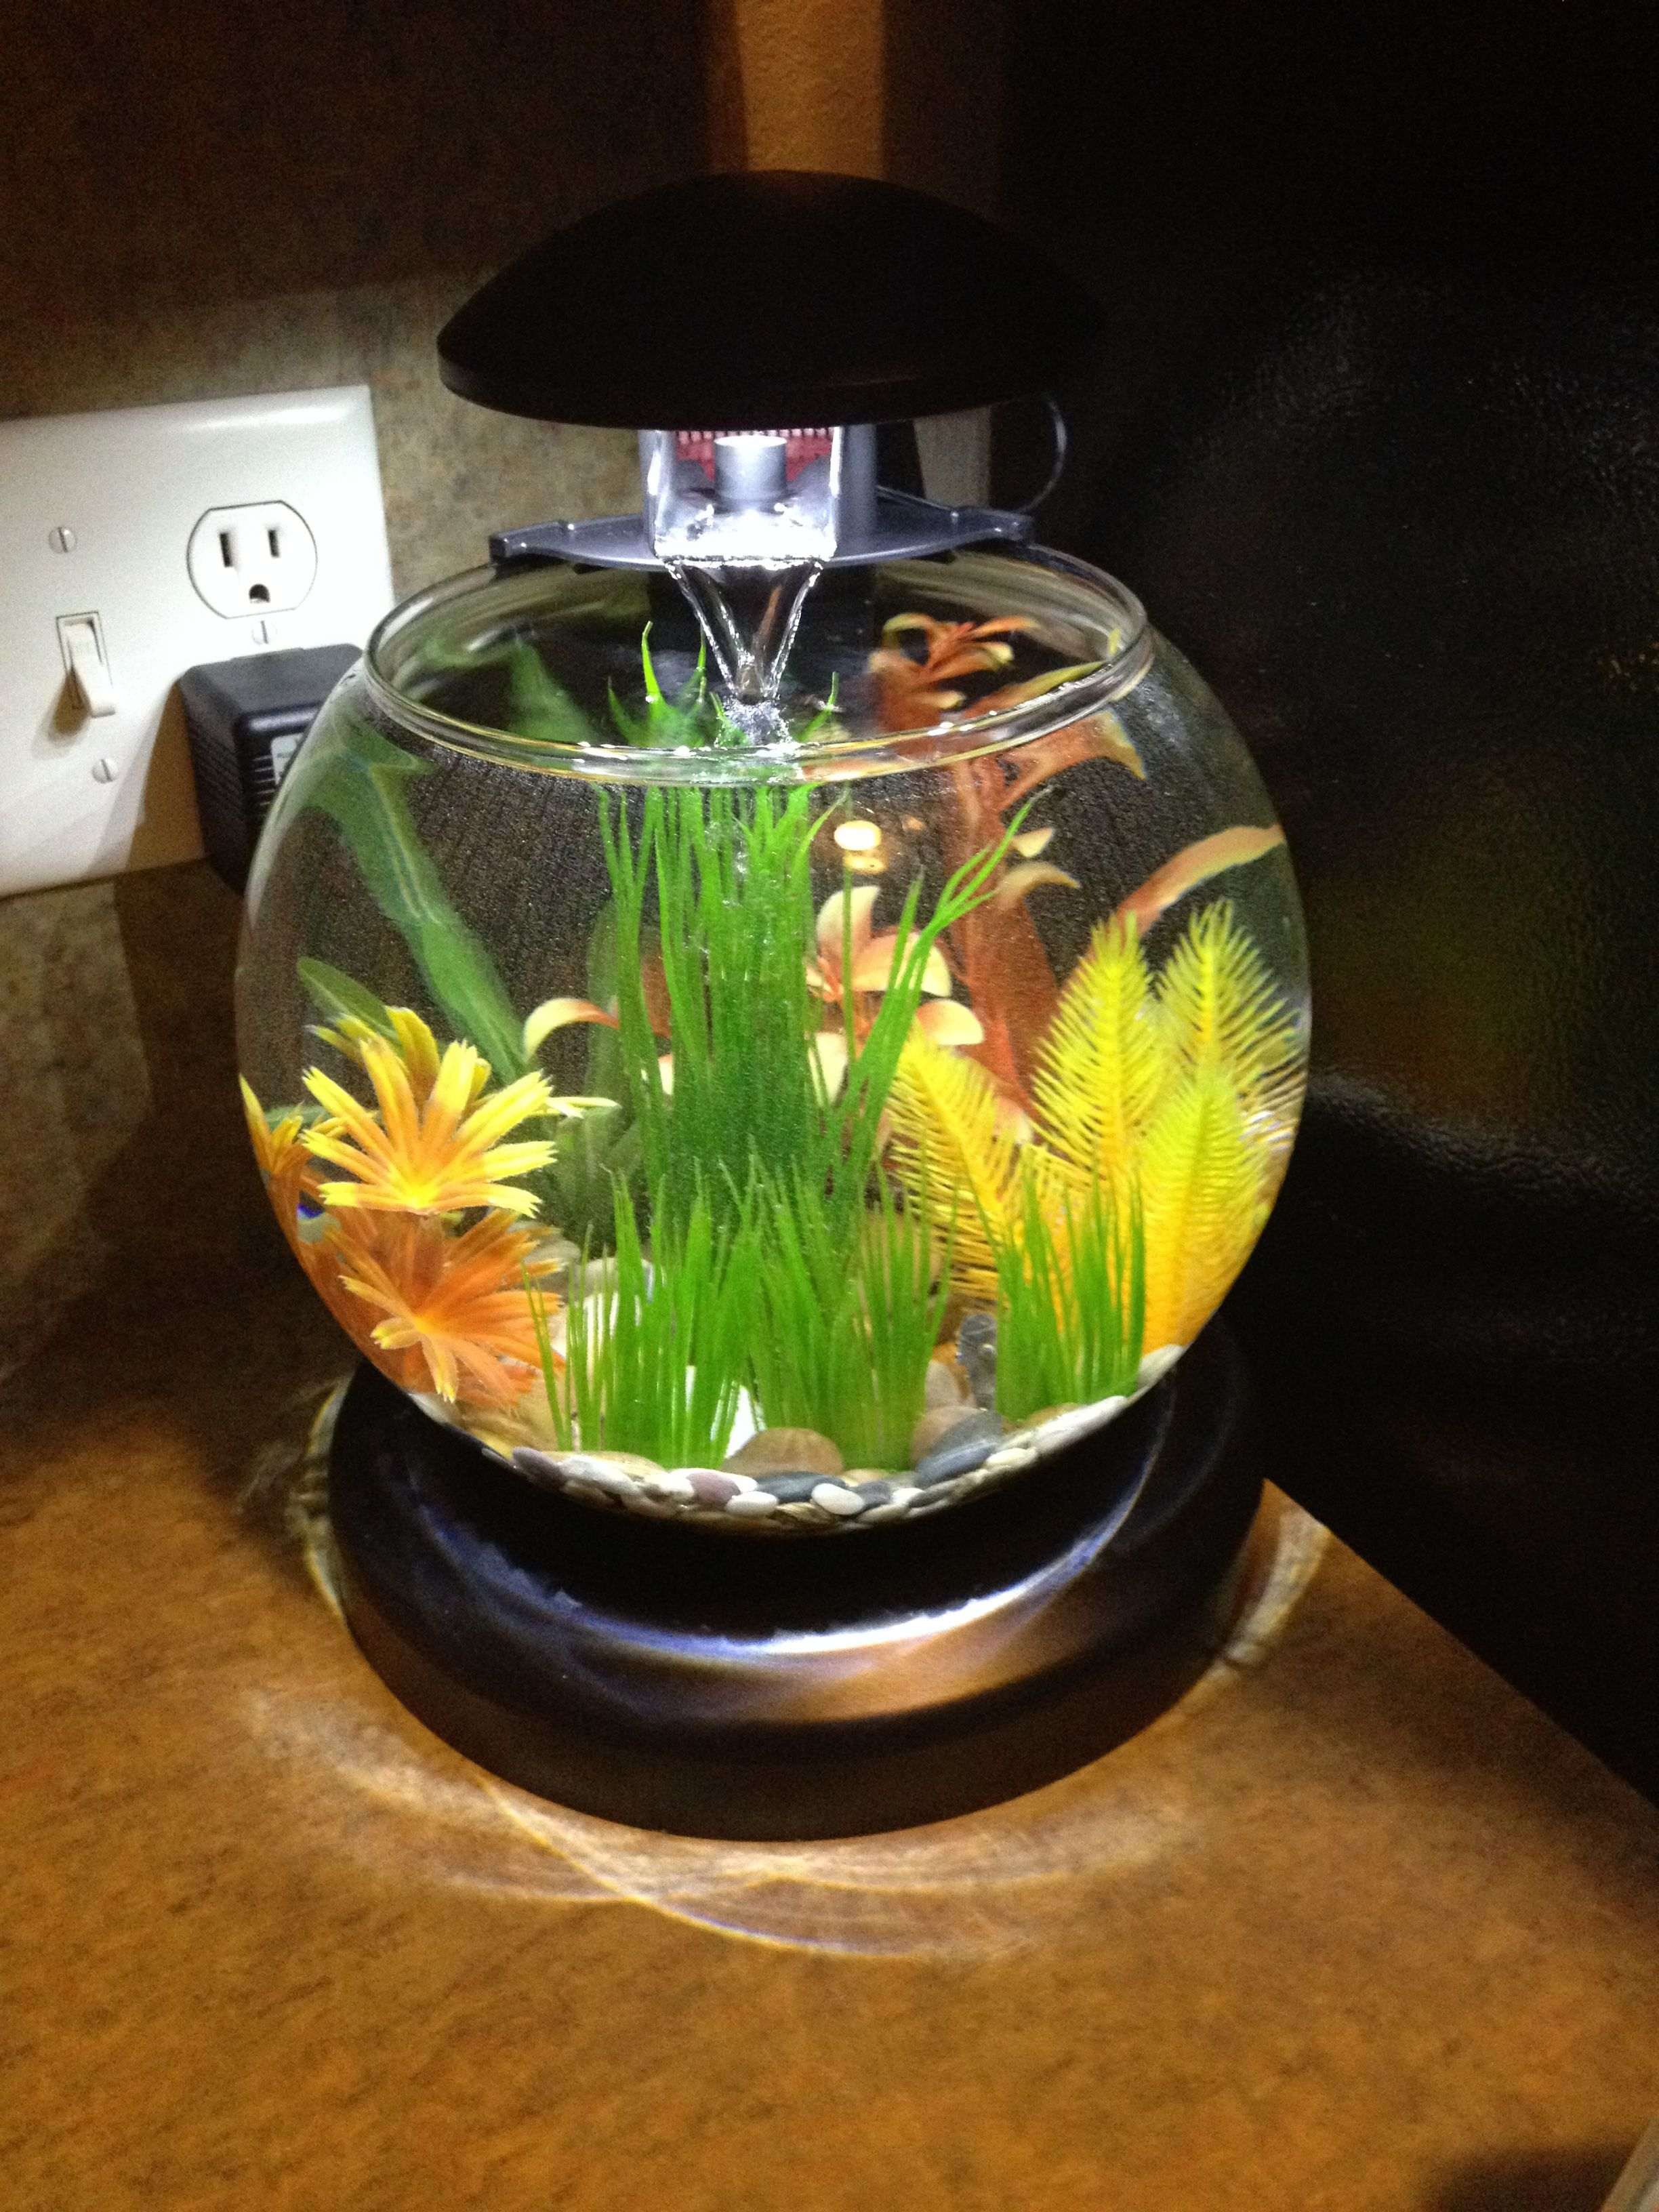 Betta Fish Bowl With Waterfall Filter And Heater Beta Fish Tank Betta Fish Bowl Aquarium Heater